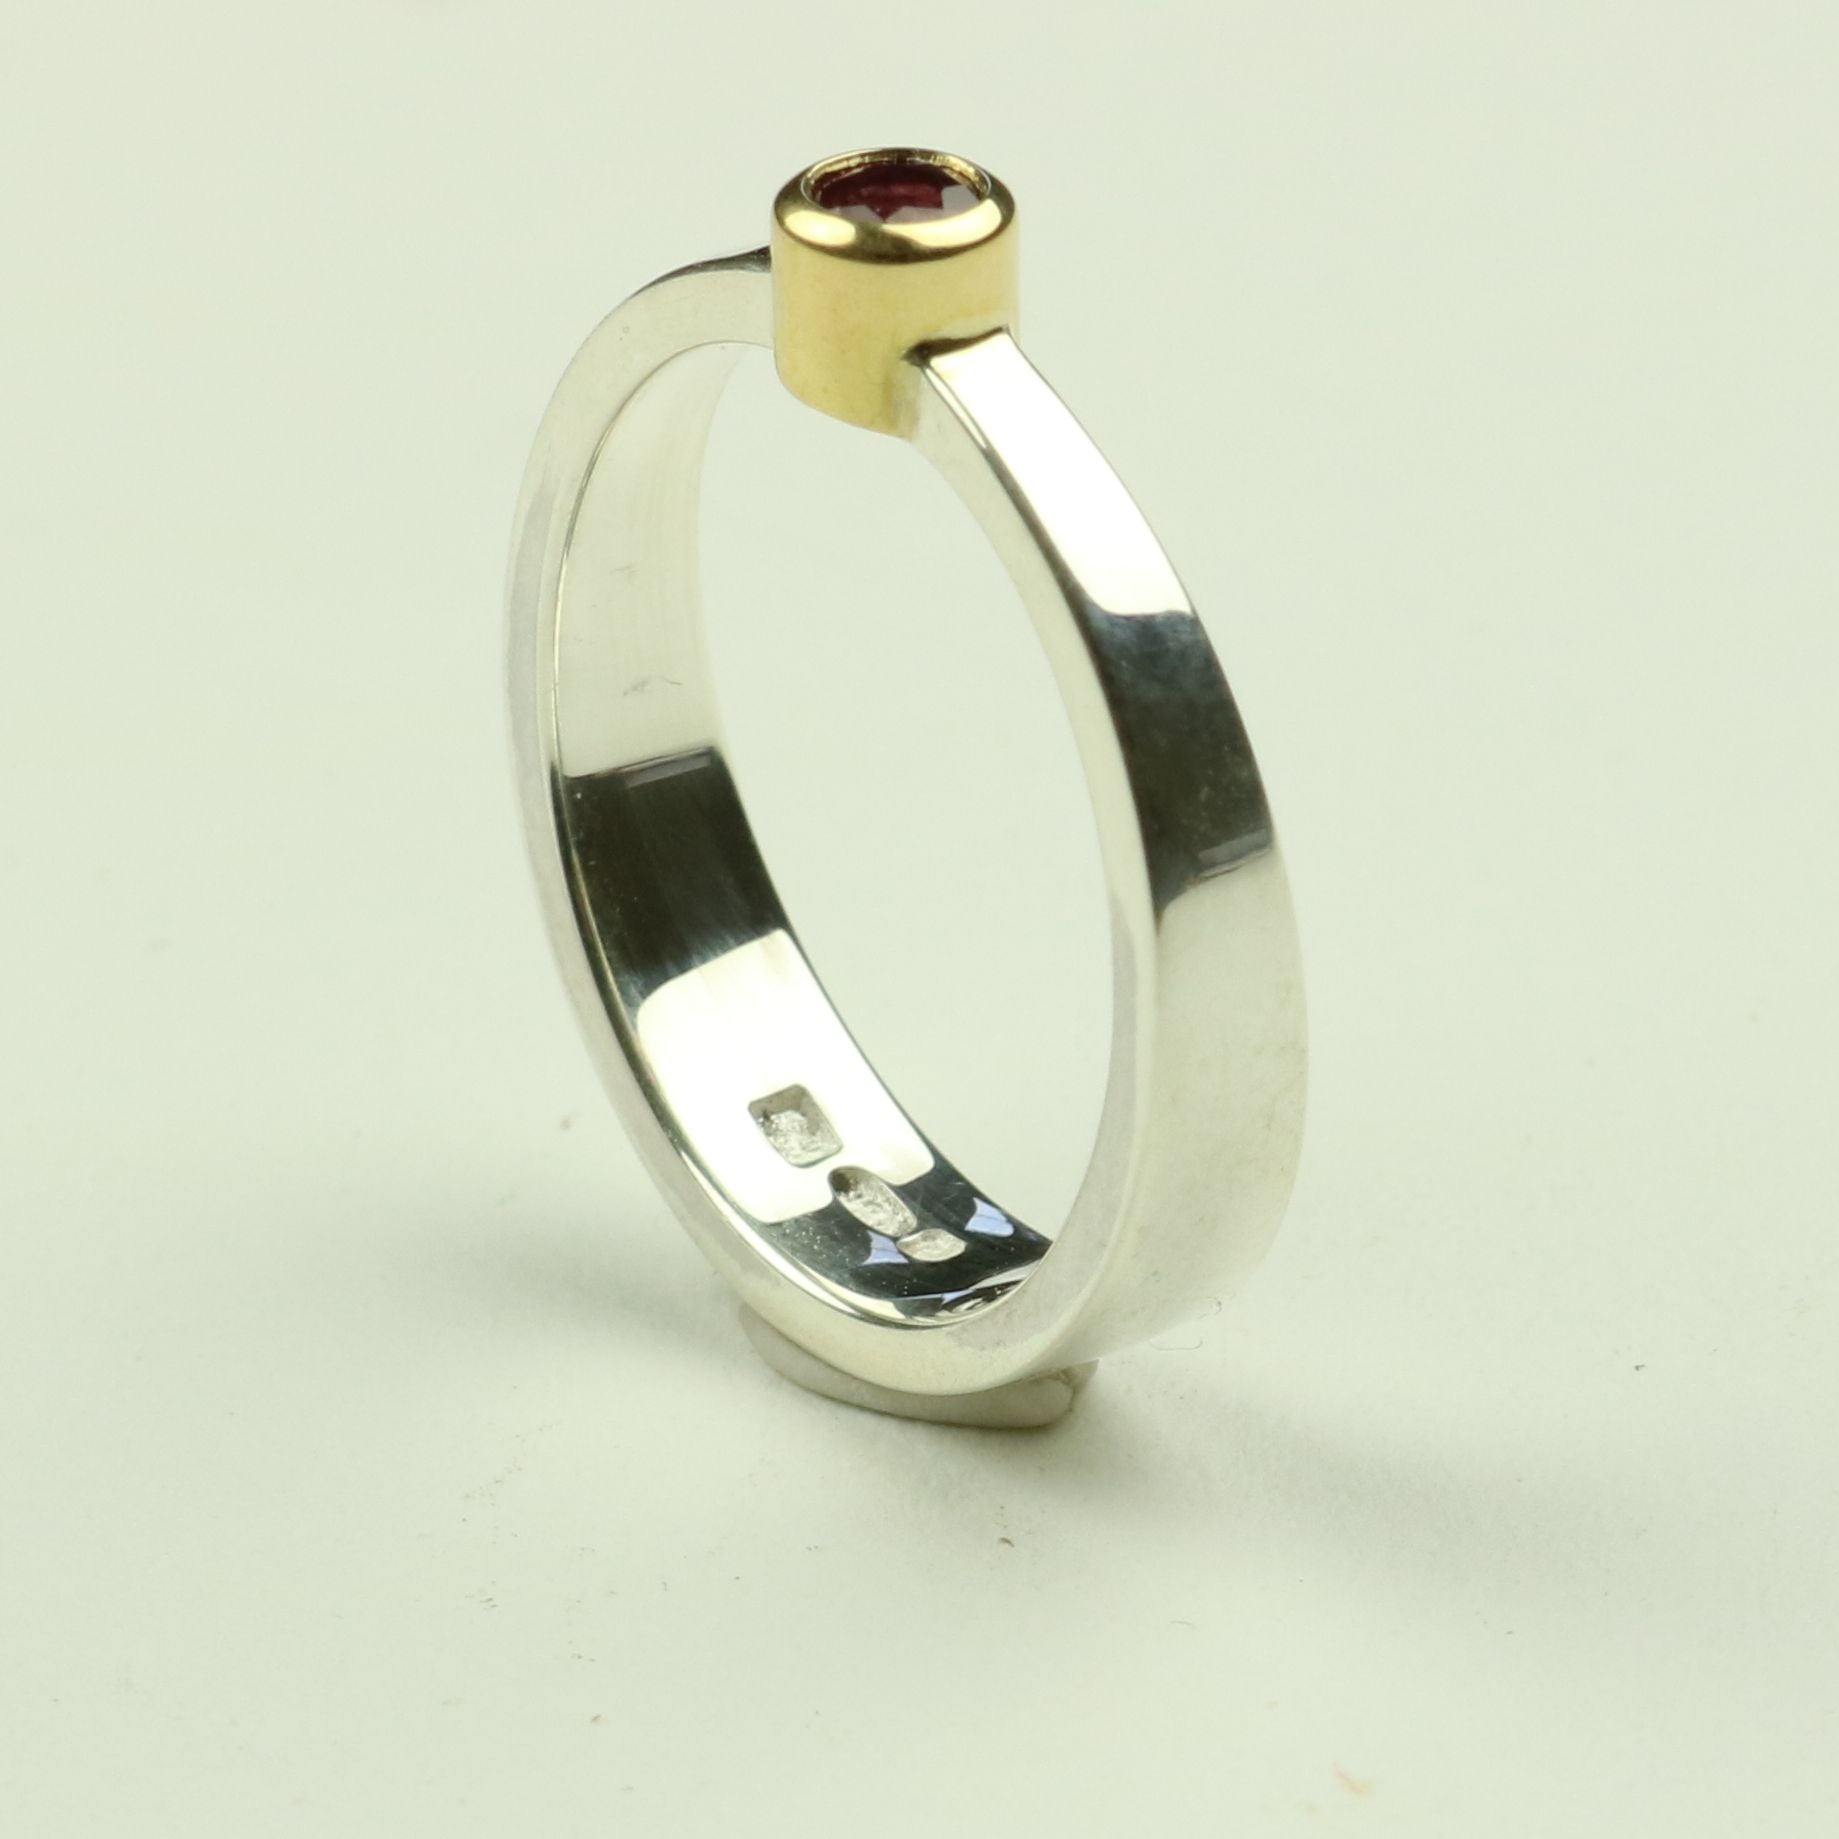 Taper Ring in Silver and Gold with Ruby